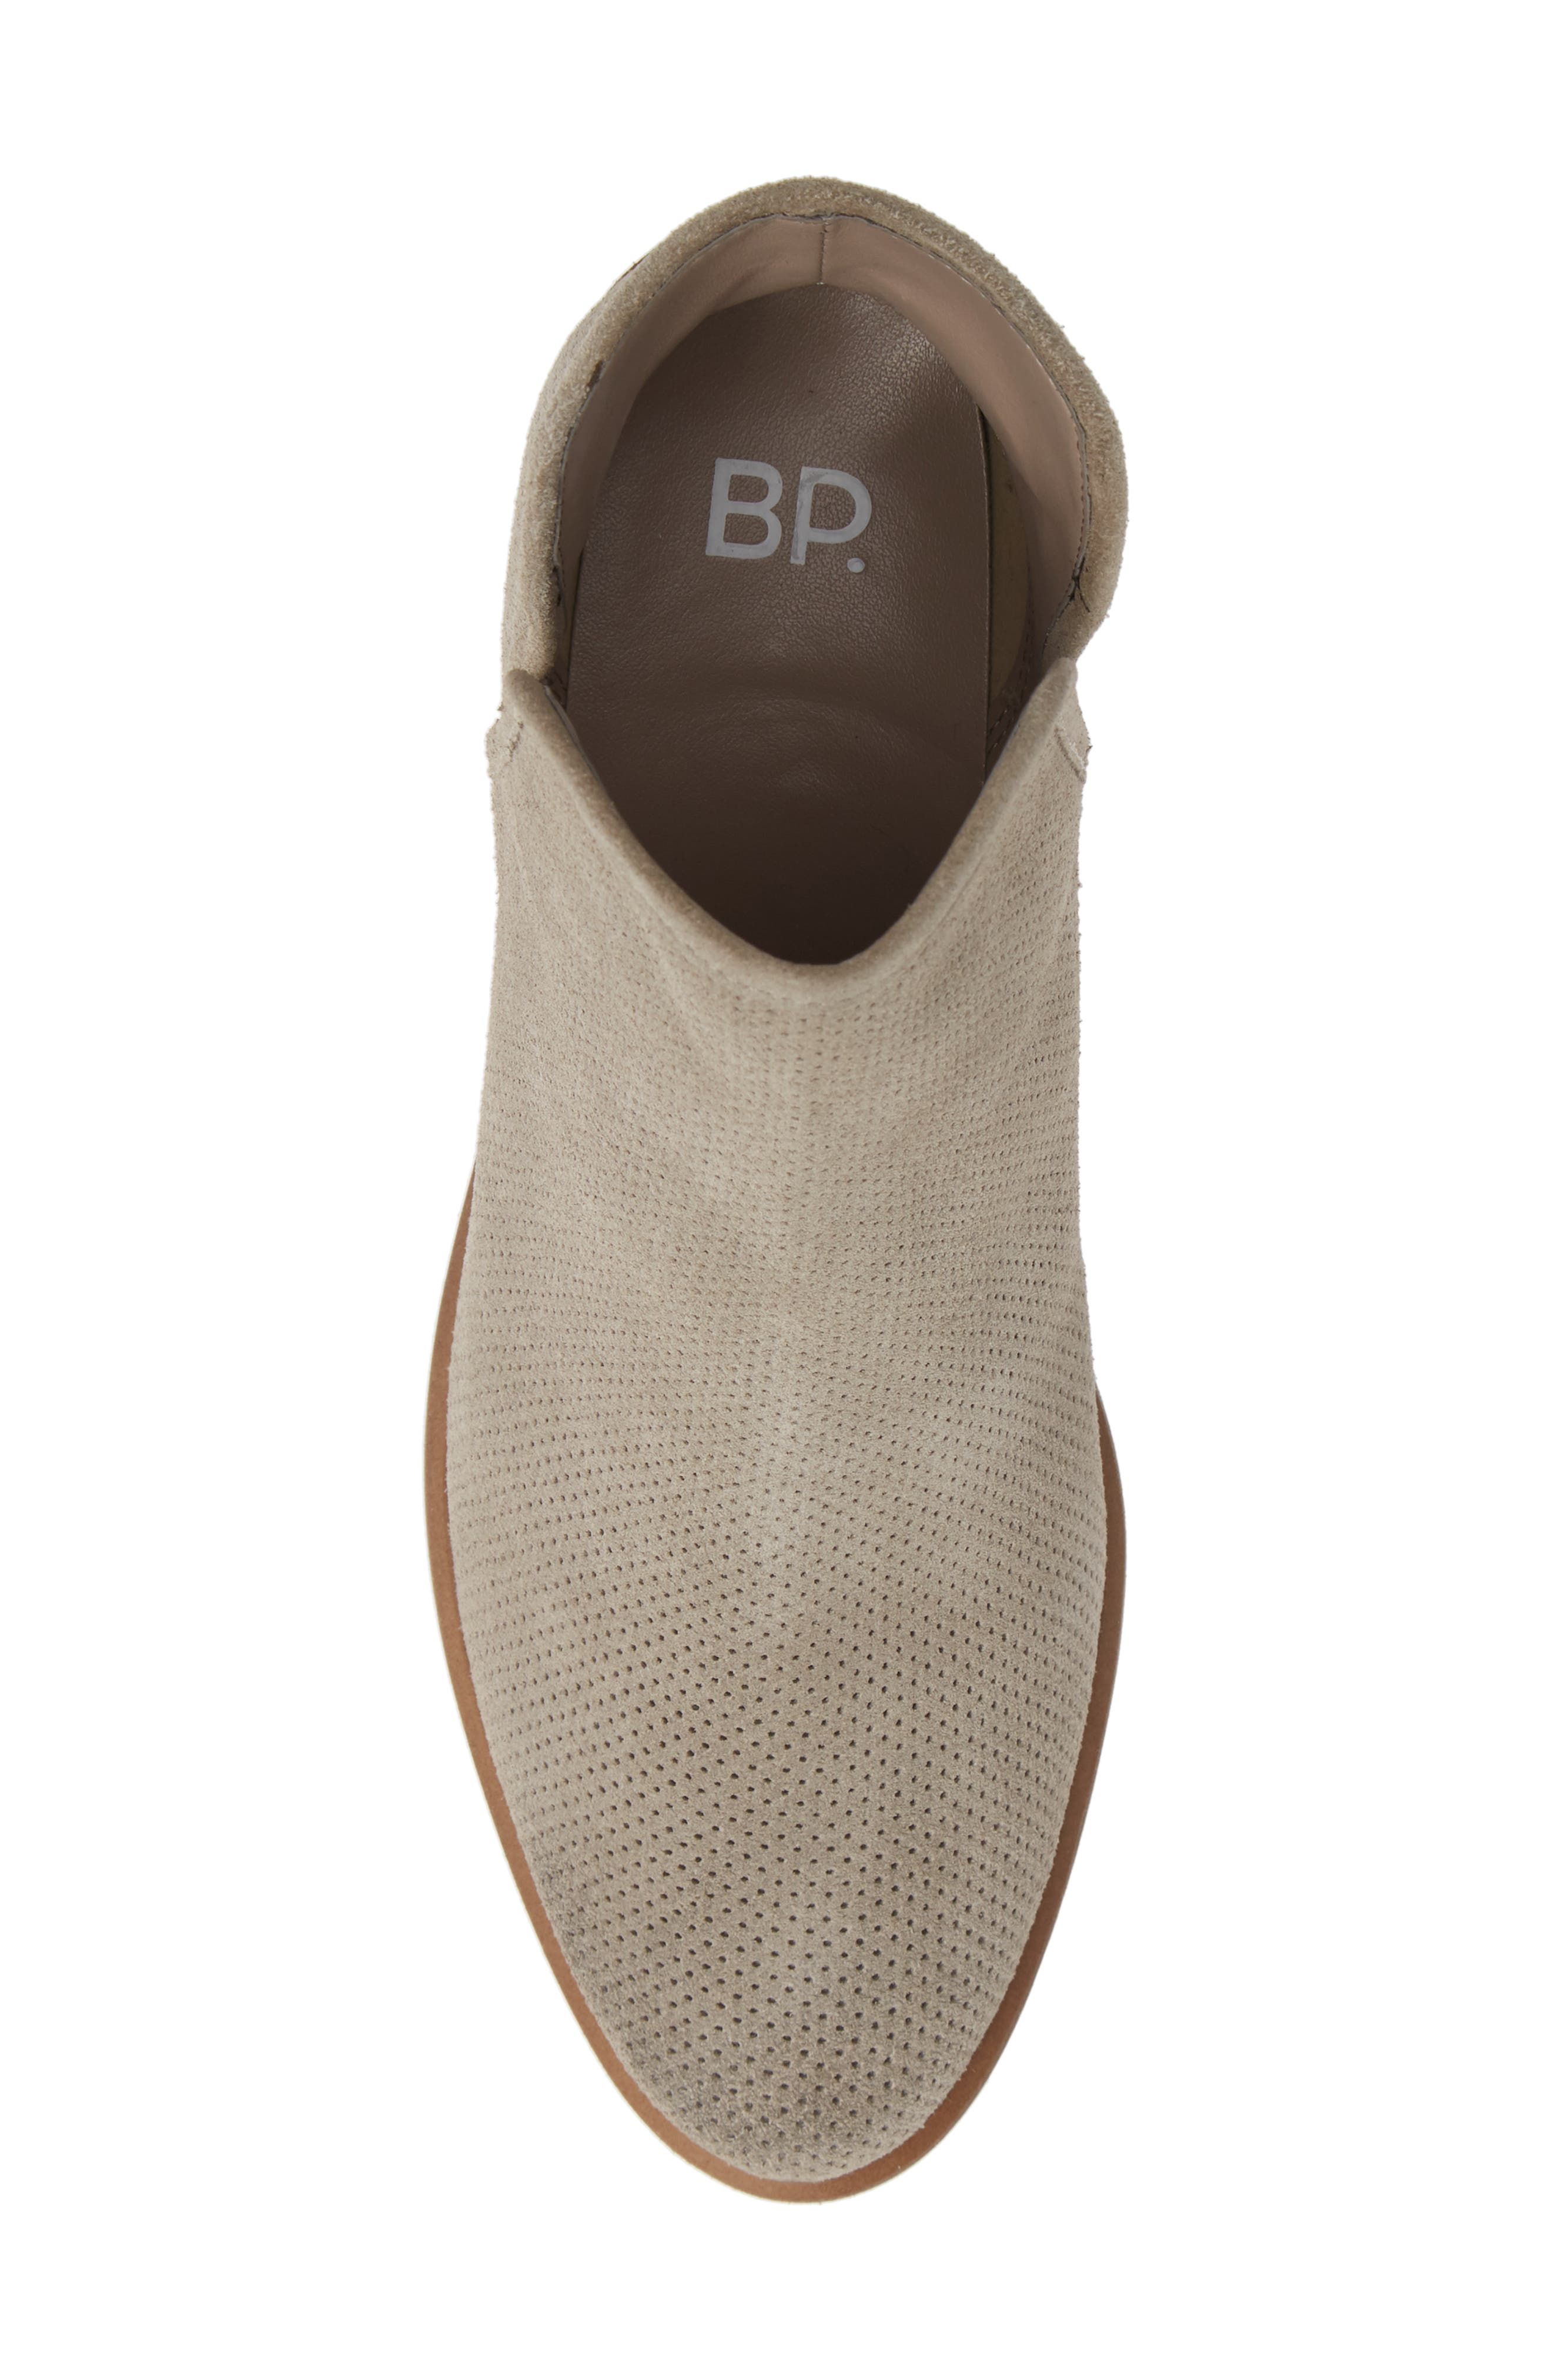 ,                             BP Barris Block Heel Bootie,                             Alternate thumbnail 22, color,                             025